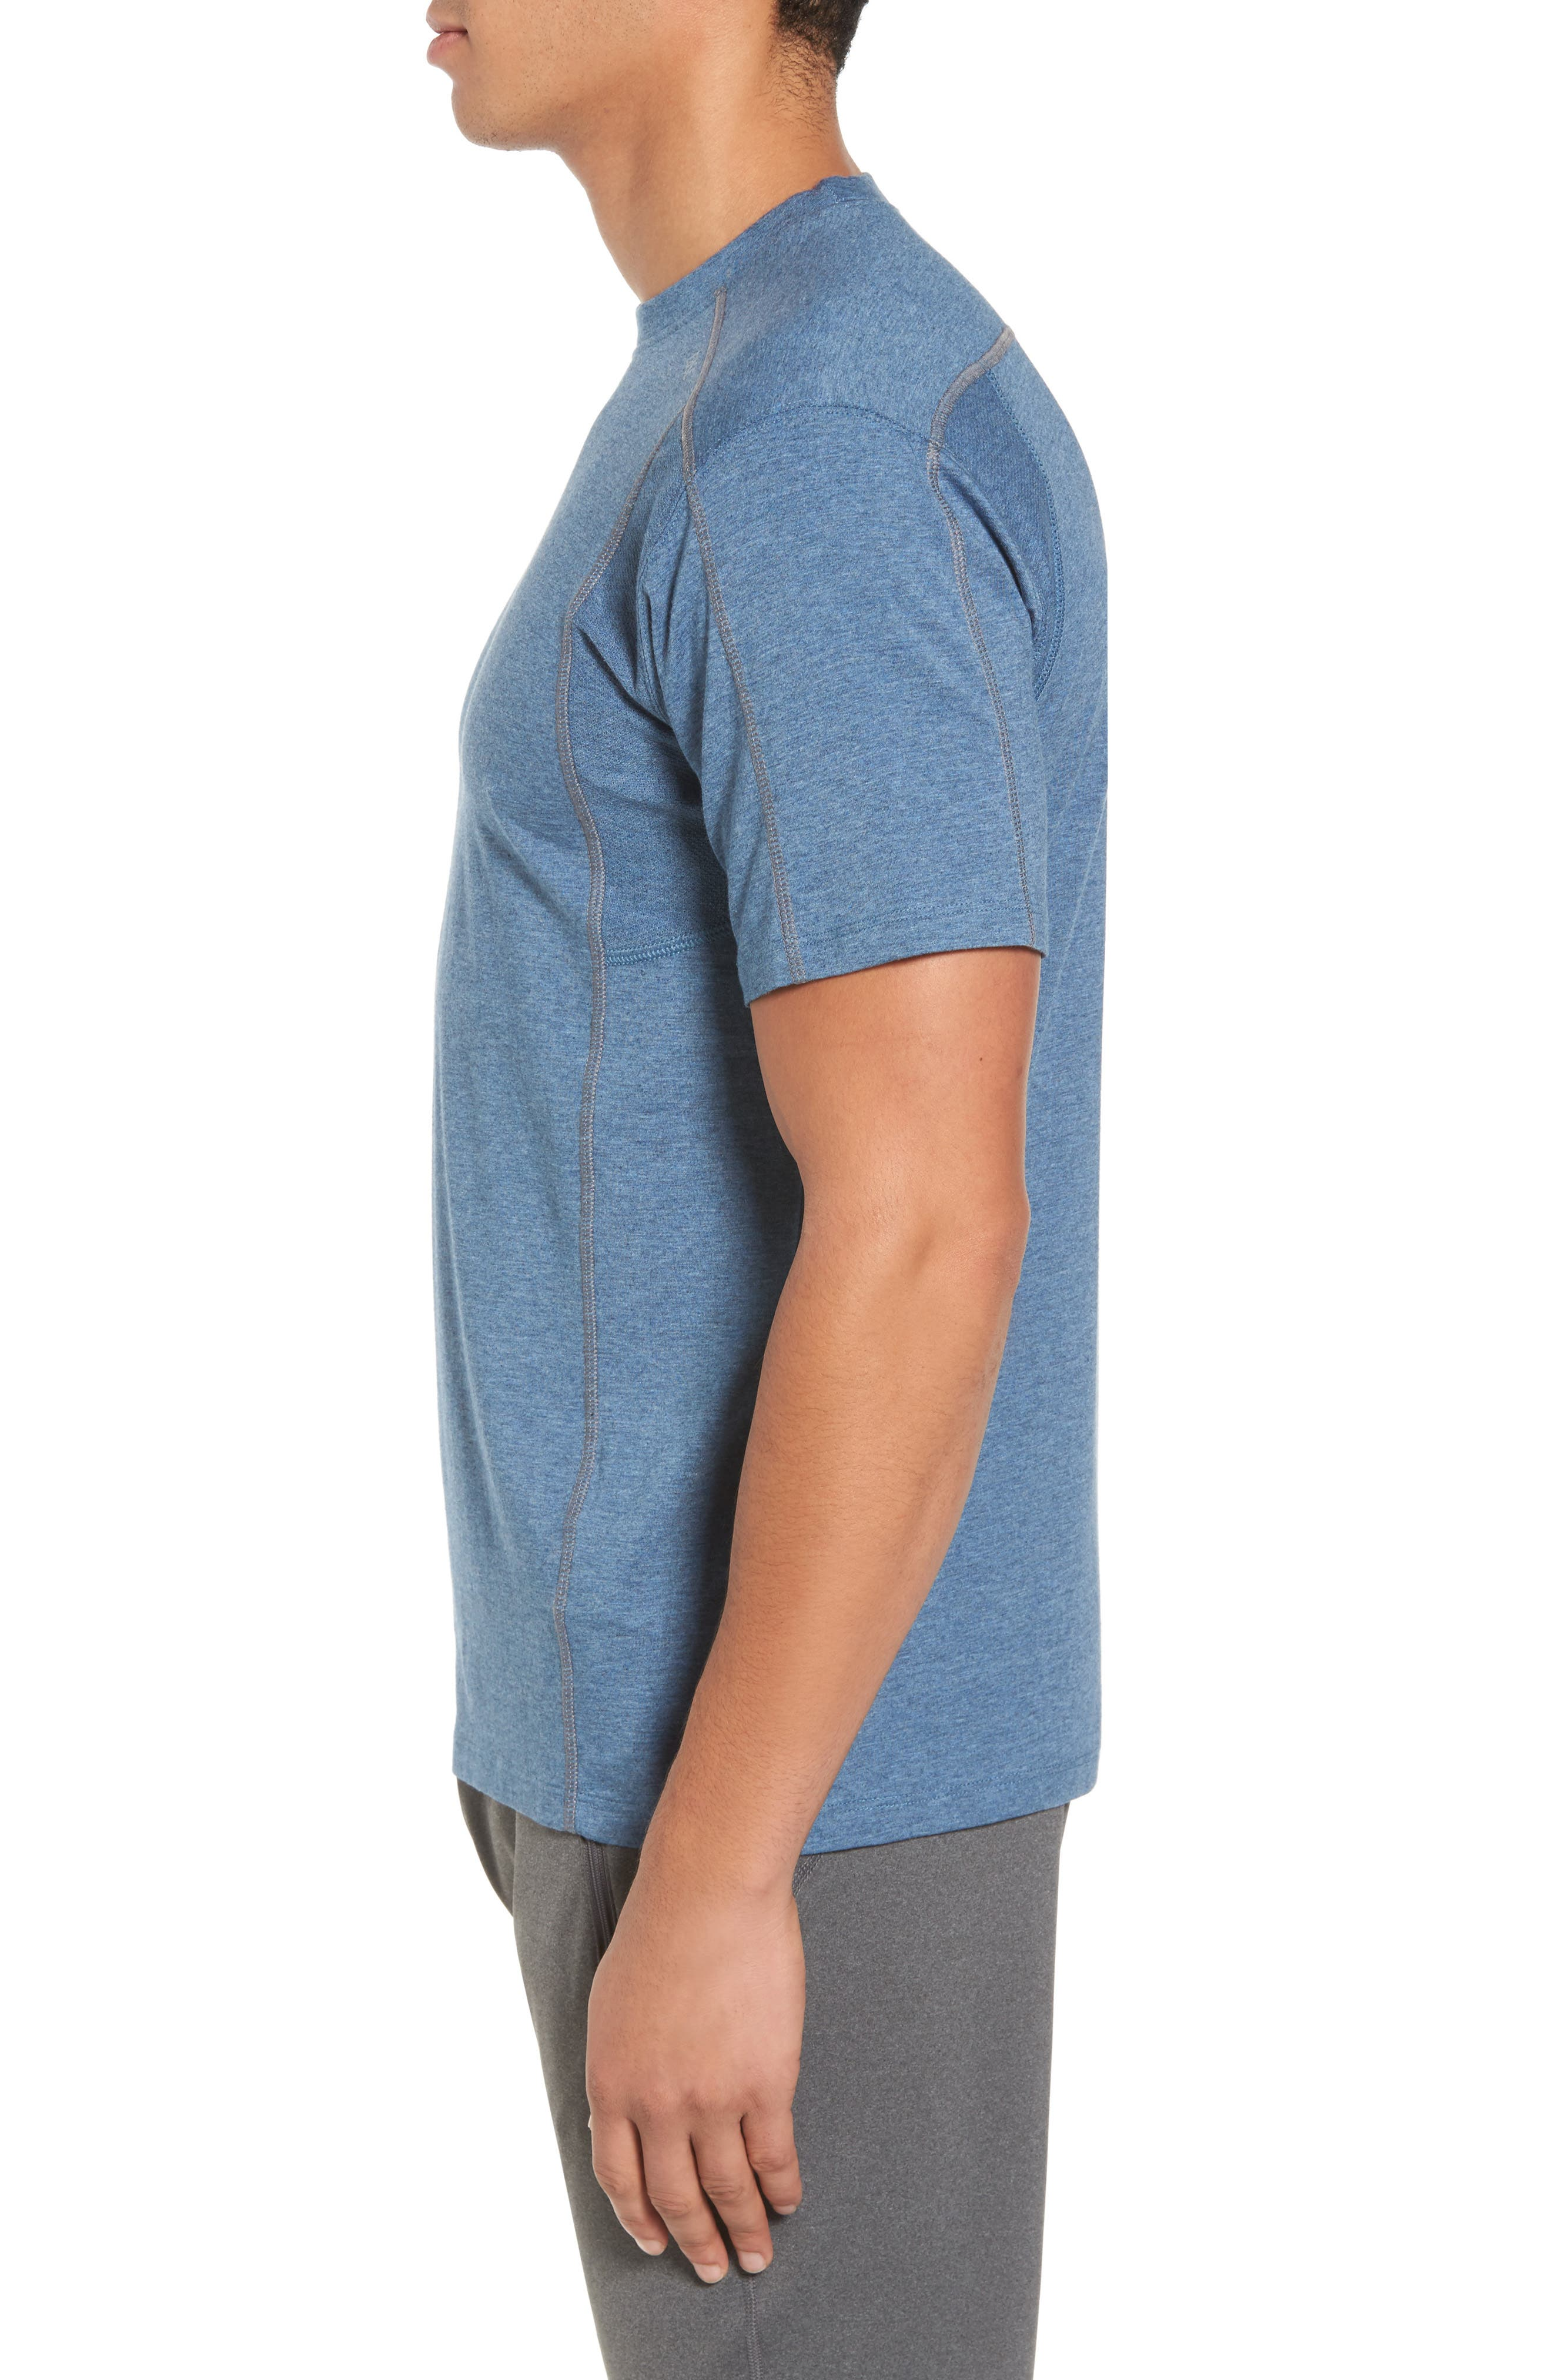 TASC PERFORMANCE, Charge Semi-Fitted T-Shirt, Alternate thumbnail 3, color, INDIGO HEATHER